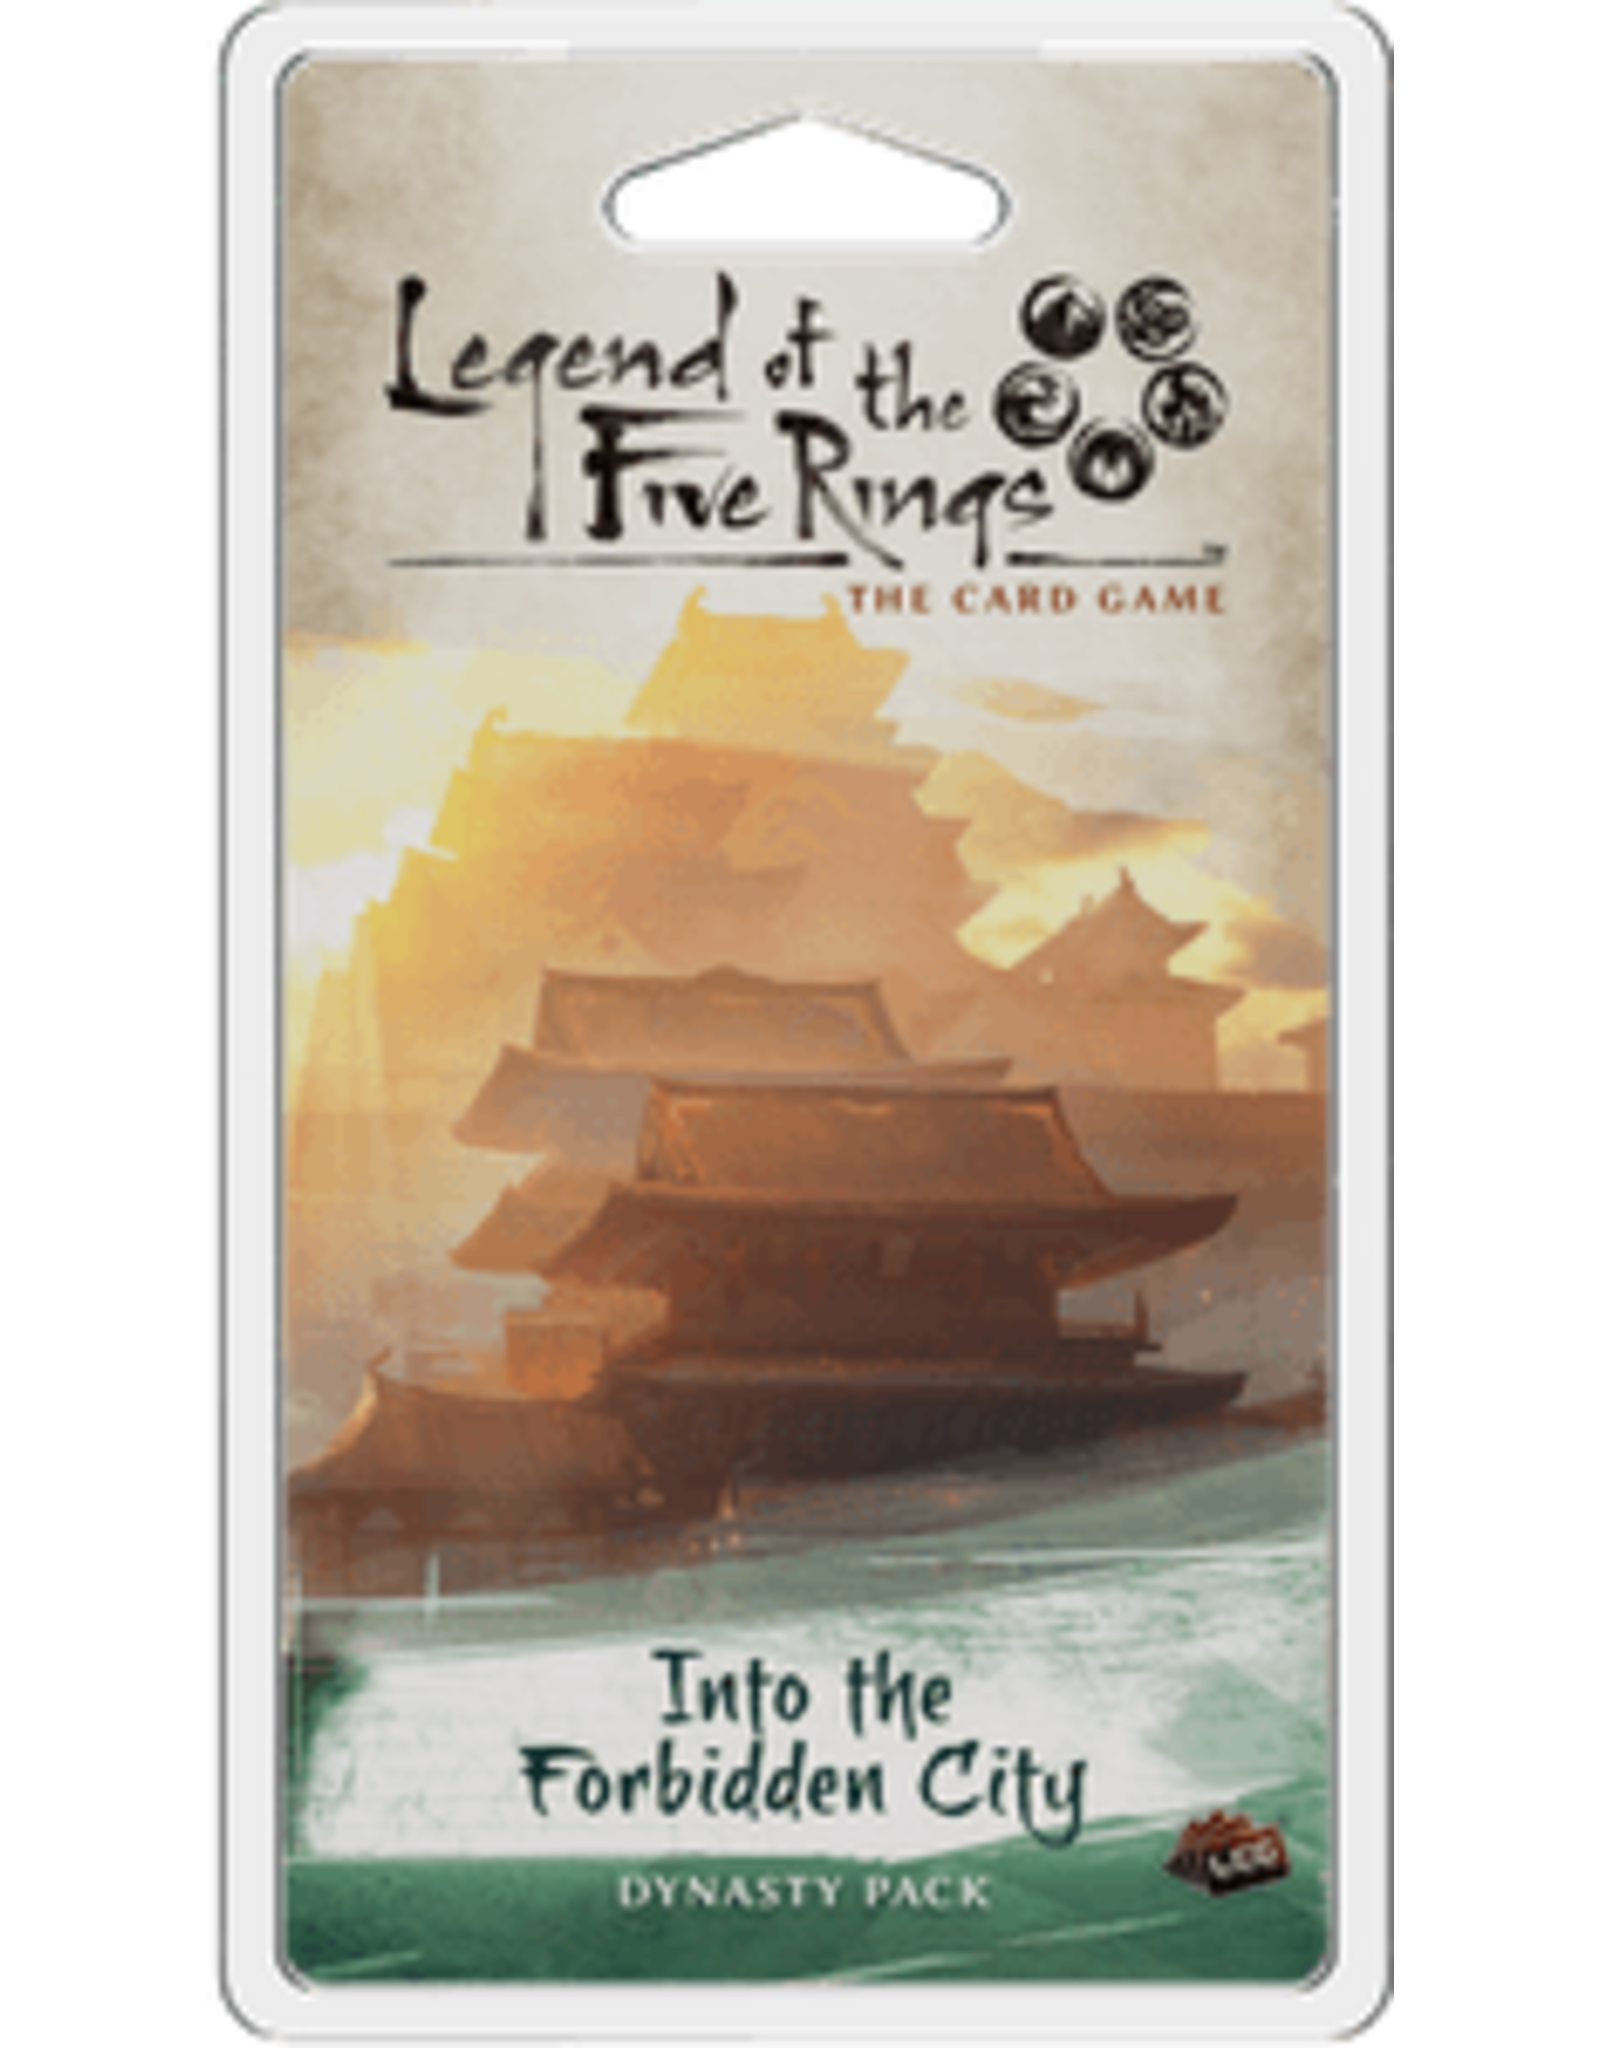 Legend of the Five Rings LCG Into the Forbidden City Dynasty Pack